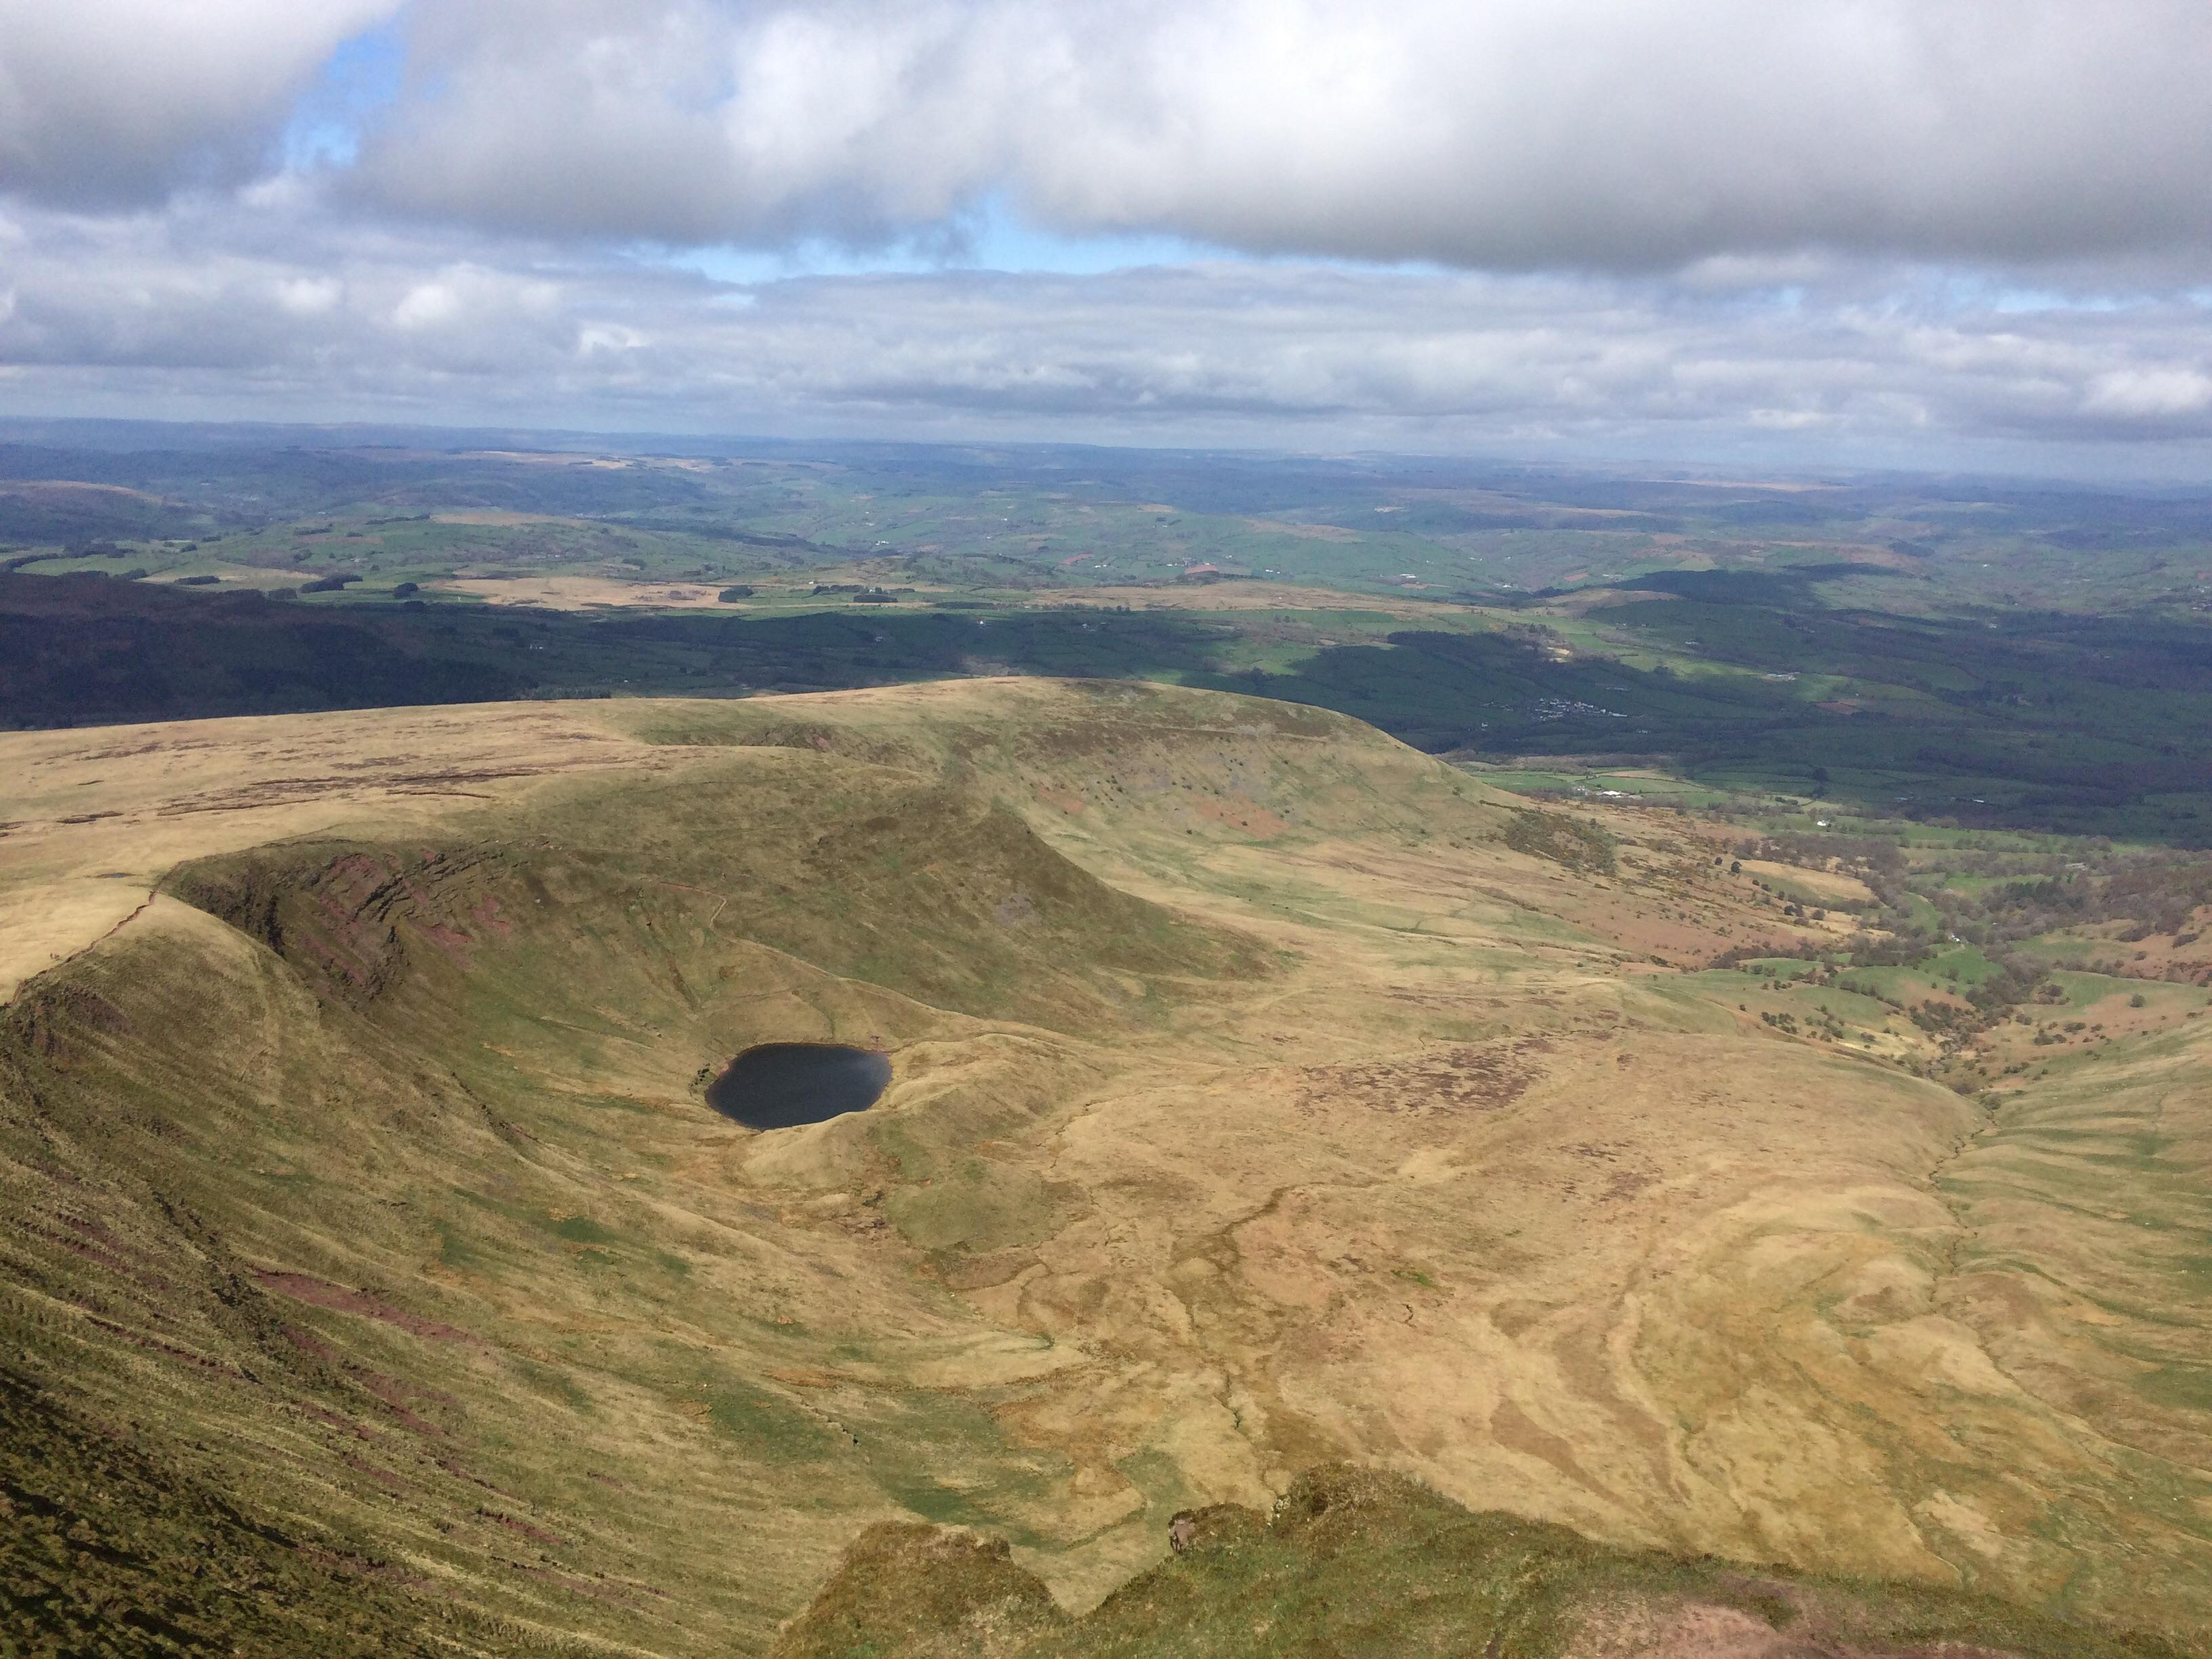 Pen-y-Fan Brecon Beacons National Park, Pen Y Fan mountain, Brecon Beacons national park, South Wales, UK ...